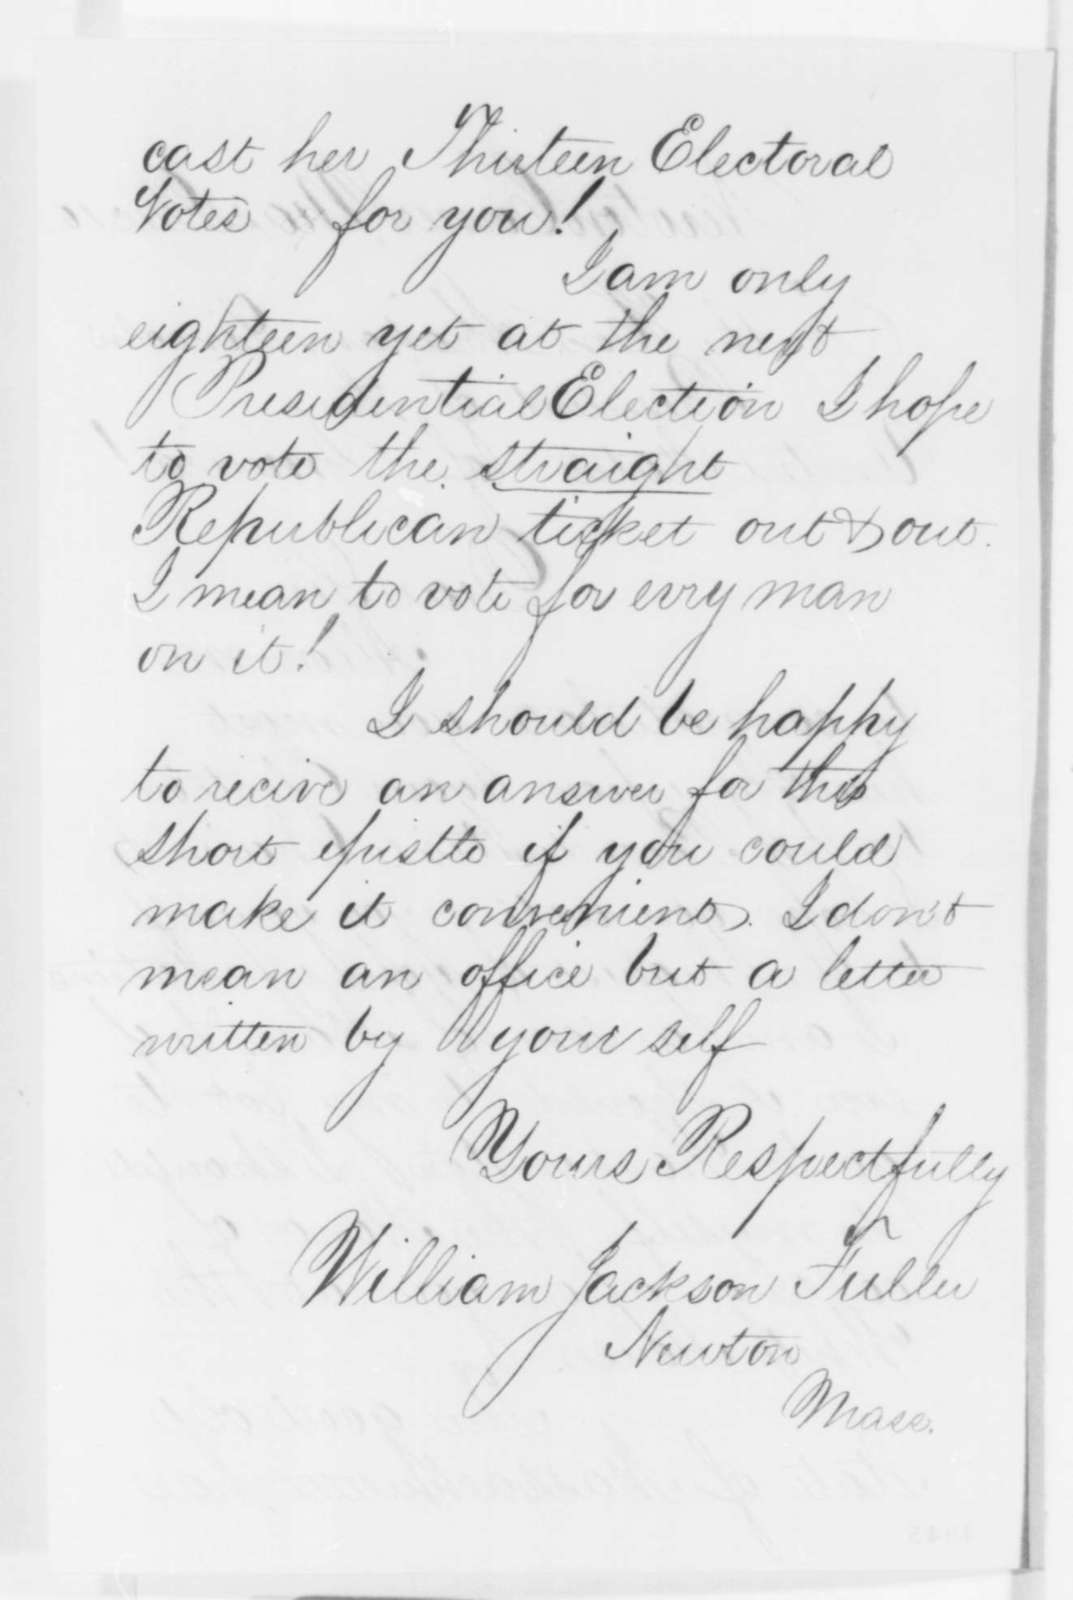 William Jackson Fuller to Abraham Lincoln, Monday, December 10, 1860  (Congratulations)